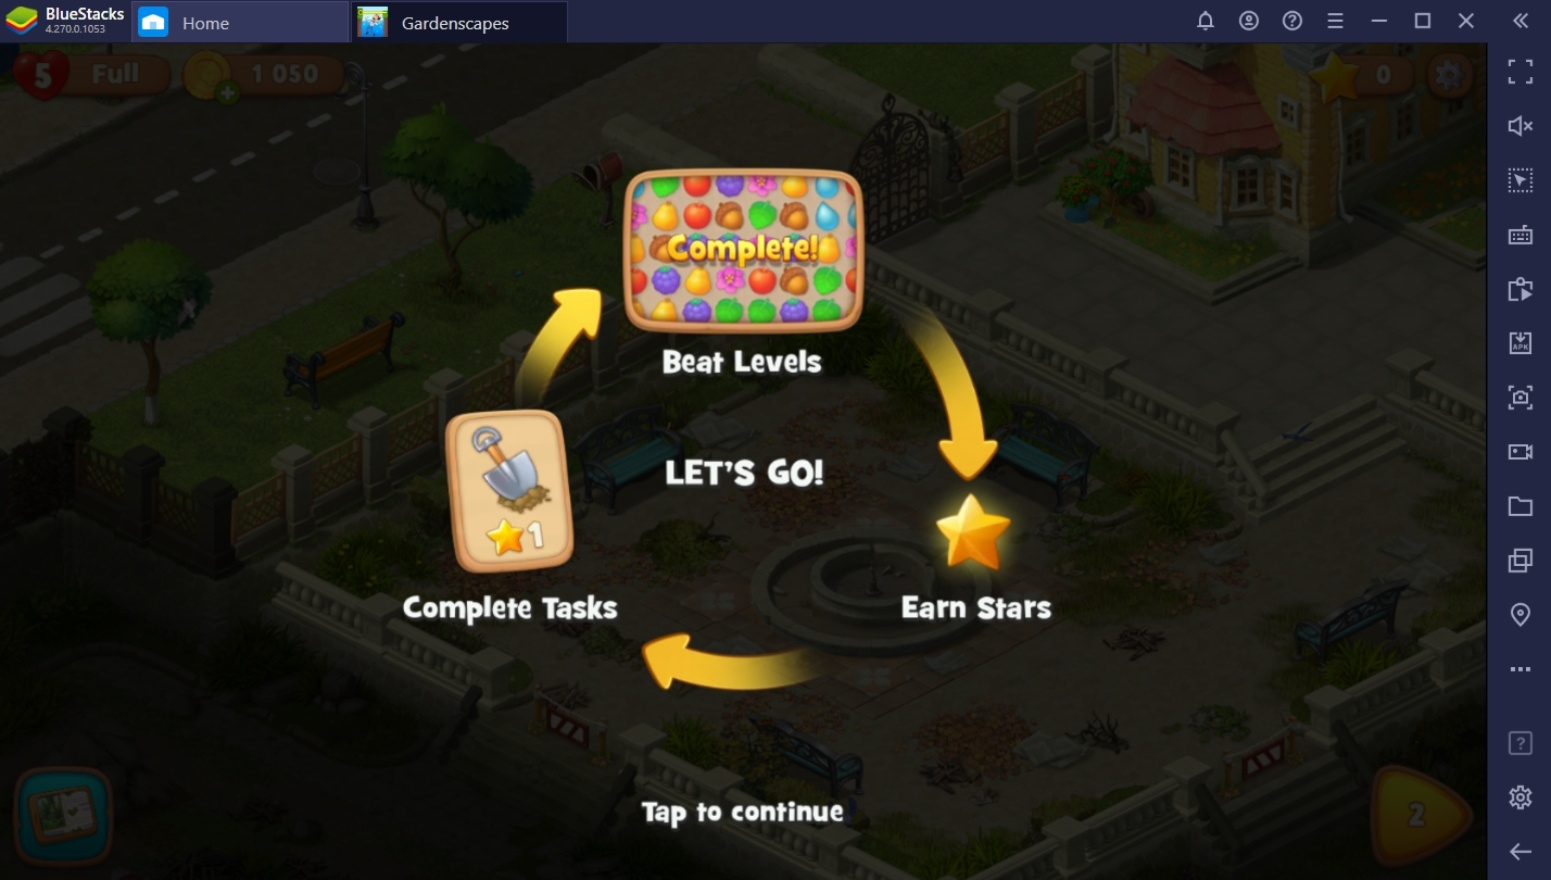 Beginner's Guide to Playing Gardenscapes